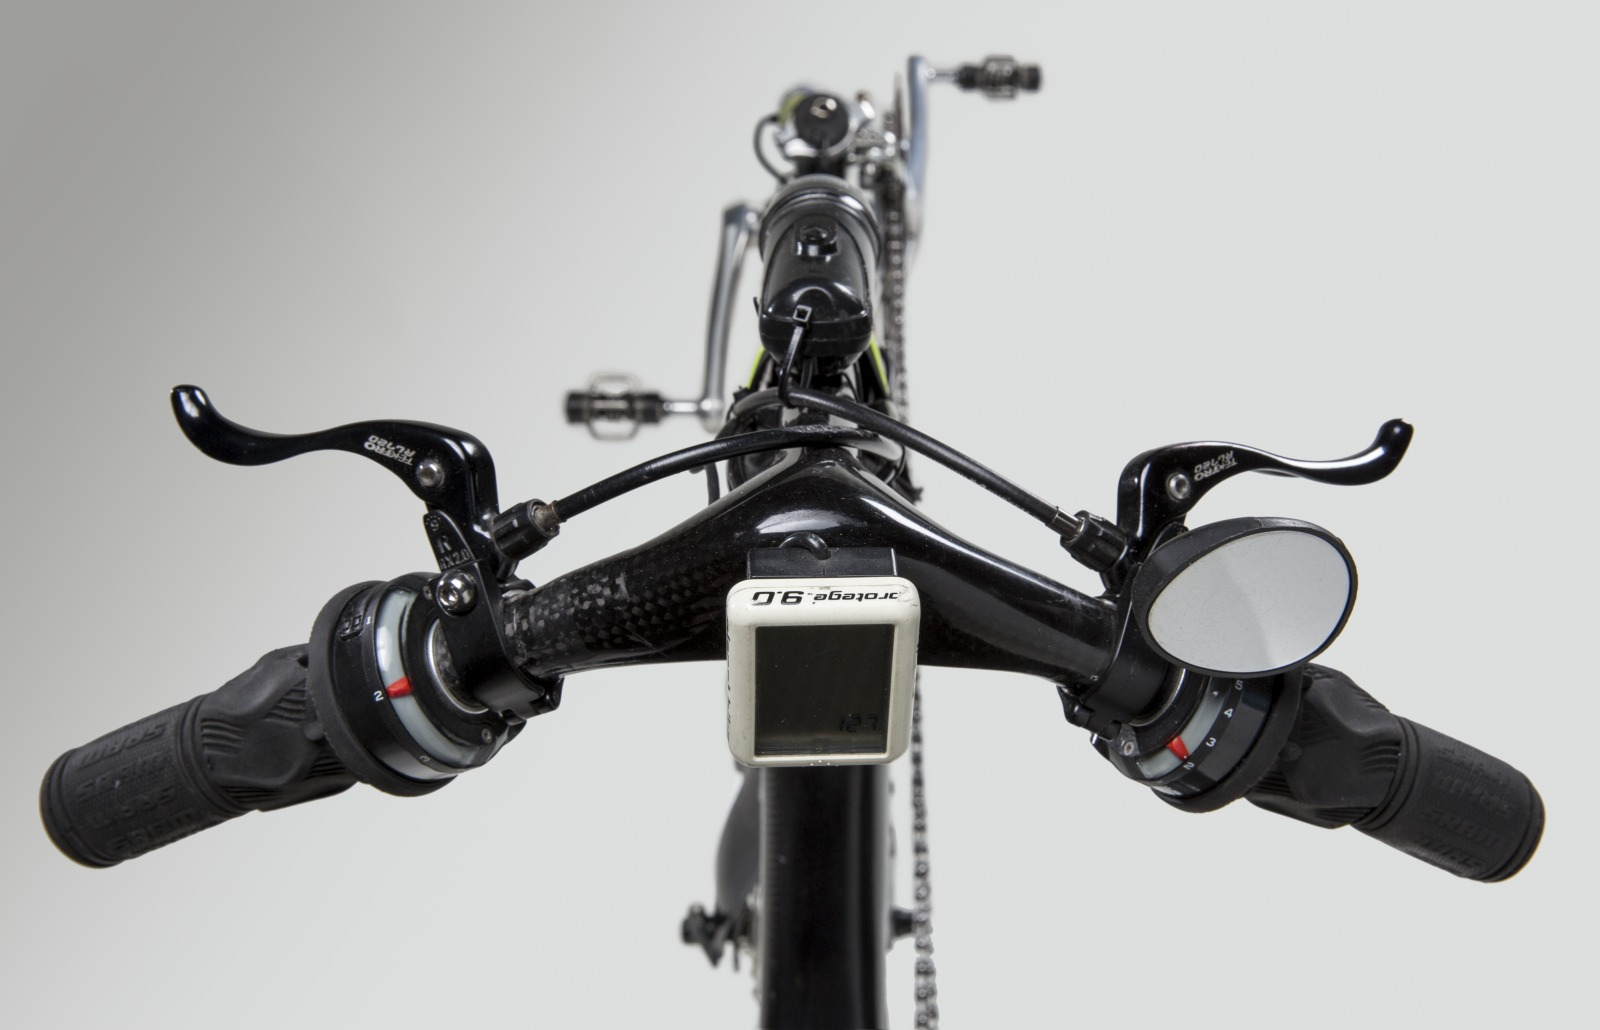 Colour photo, taken from above, showing a close up view of a bike's handlebars, with rubber handgrips and rear vision mirror. - click to view larger image